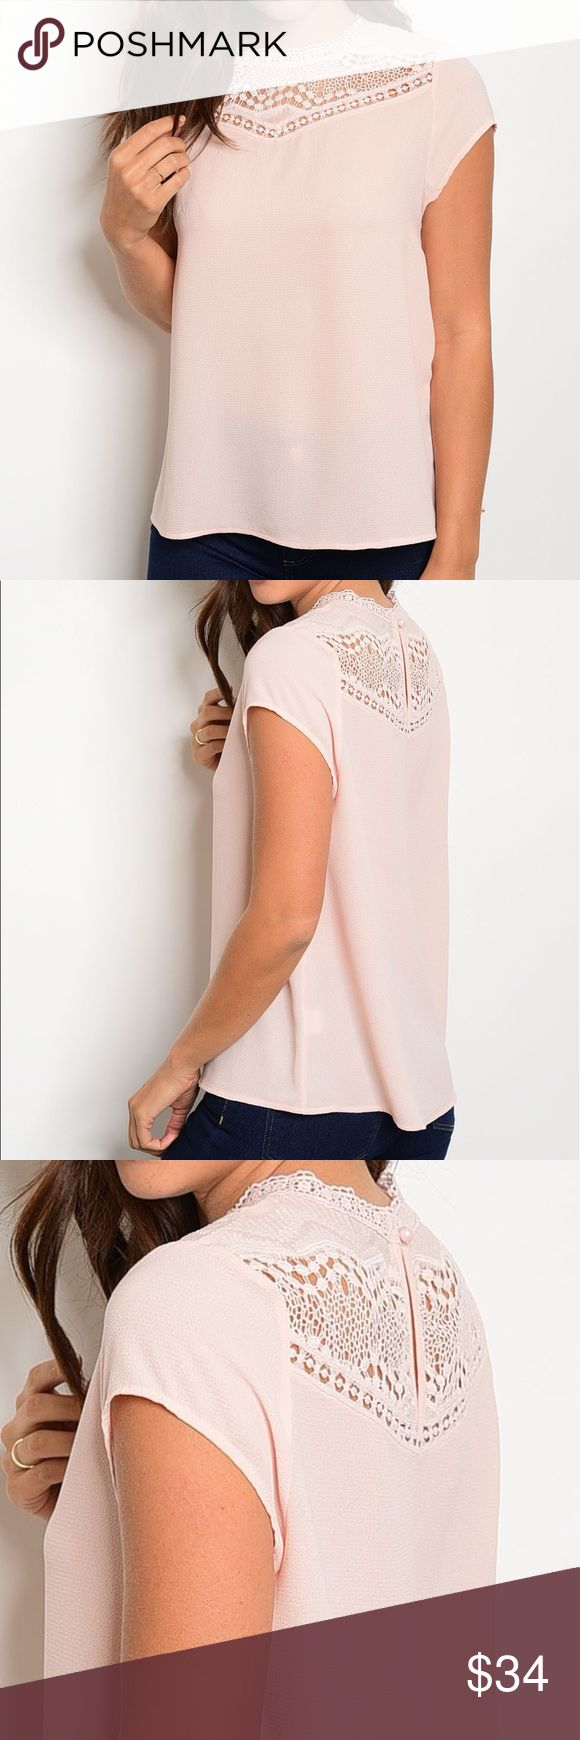 ✨NEW✨Pink Lace Crochet Short Sleeve Blouse Rounded neckline with short sleeves and a lace inset detail in the front and back. 100% cotton. Tops Blouses